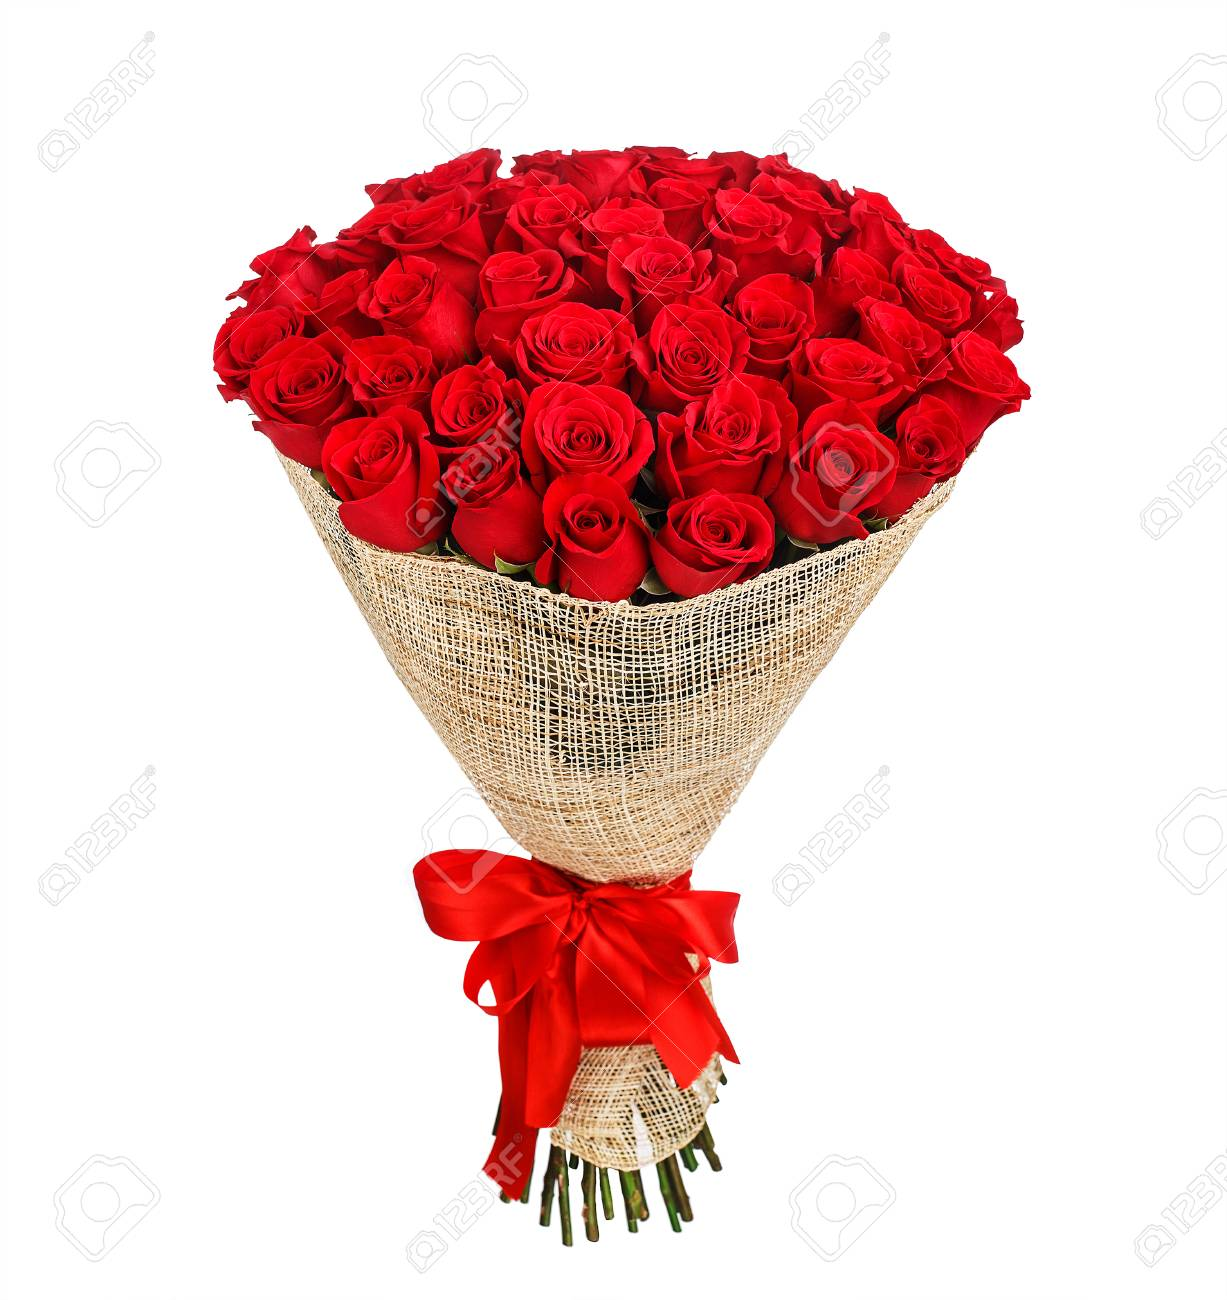 Flower Bouquet Of 50 Red Roses Stock Photo, Picture And Royalty Free ...